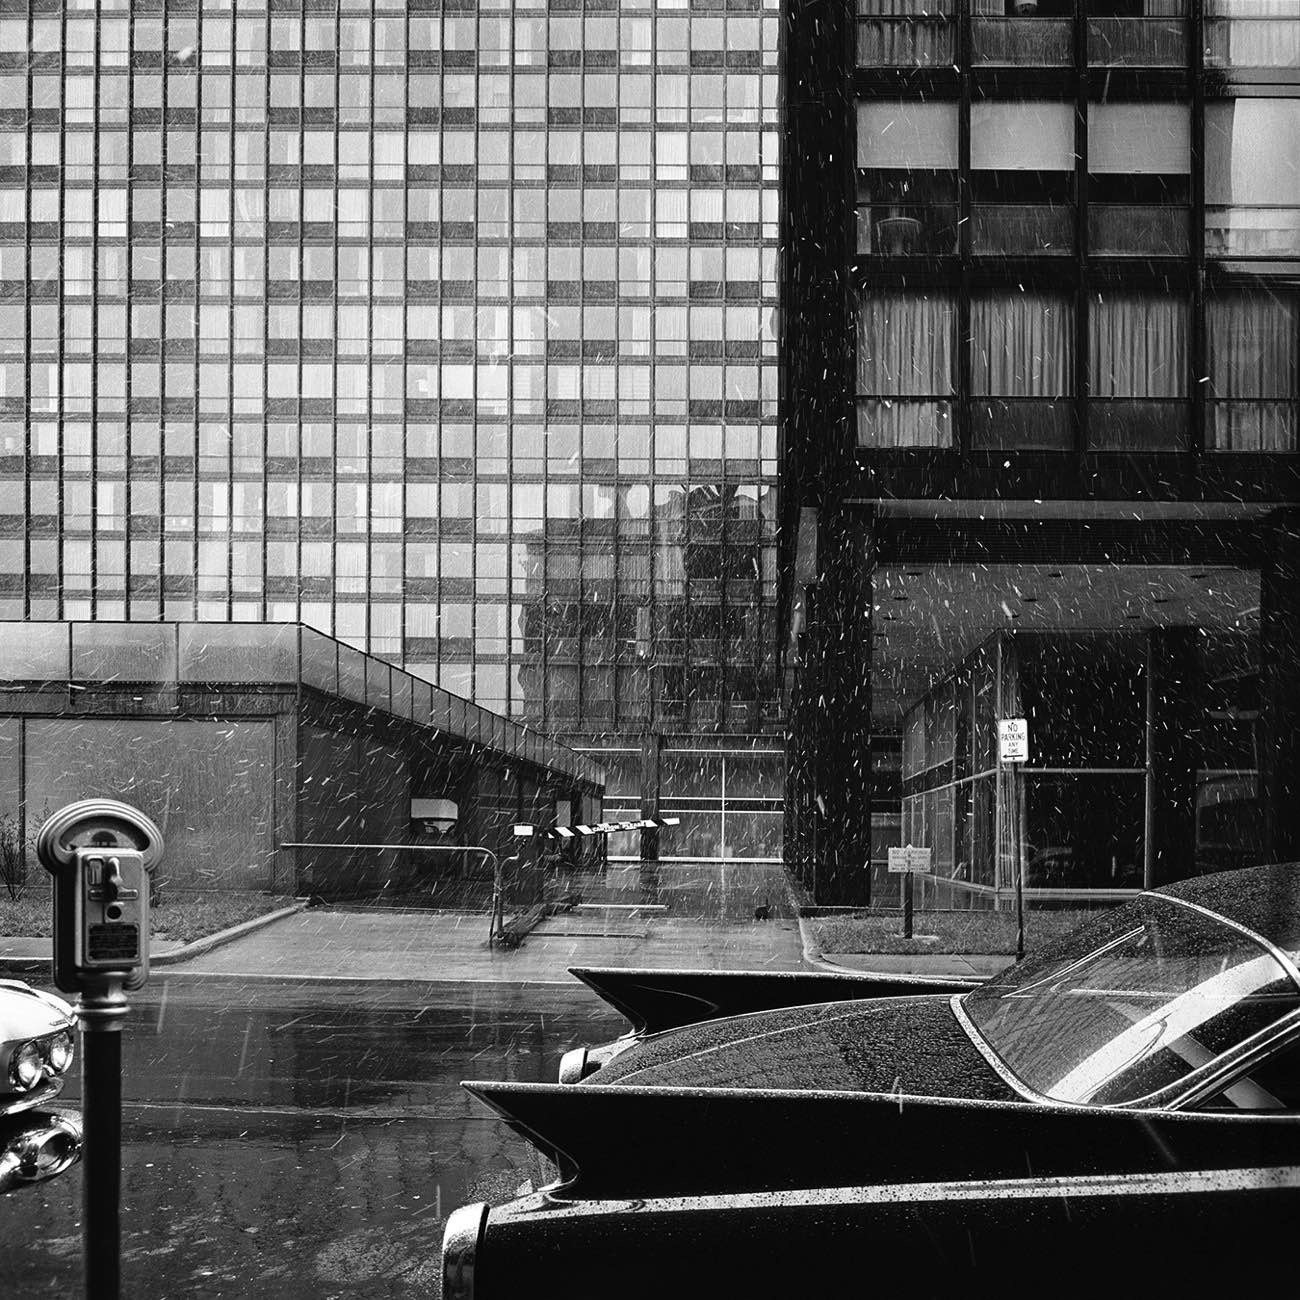 Balthazar Korab Architecture Photography Now On Display In Chicago